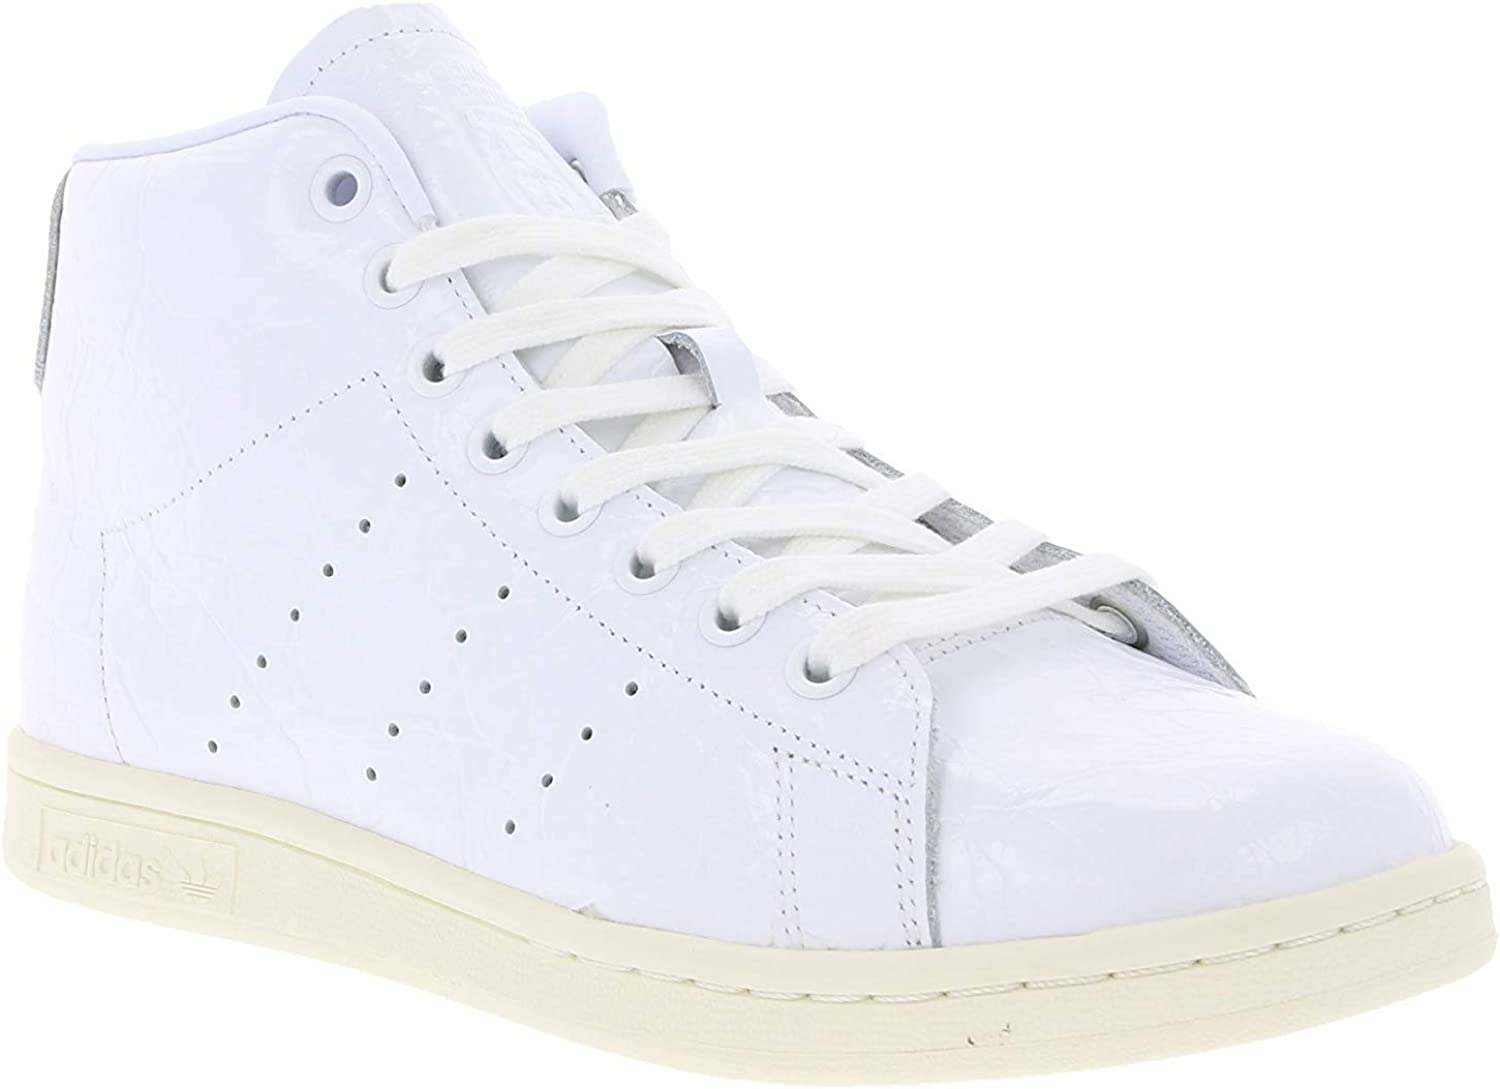 Palabra Hacer invernadero  adidas Stan Smith Mid W Ftwwht/Ftwwht/Cwhite - 43: Amazon.co.uk: Shoes &  Bags